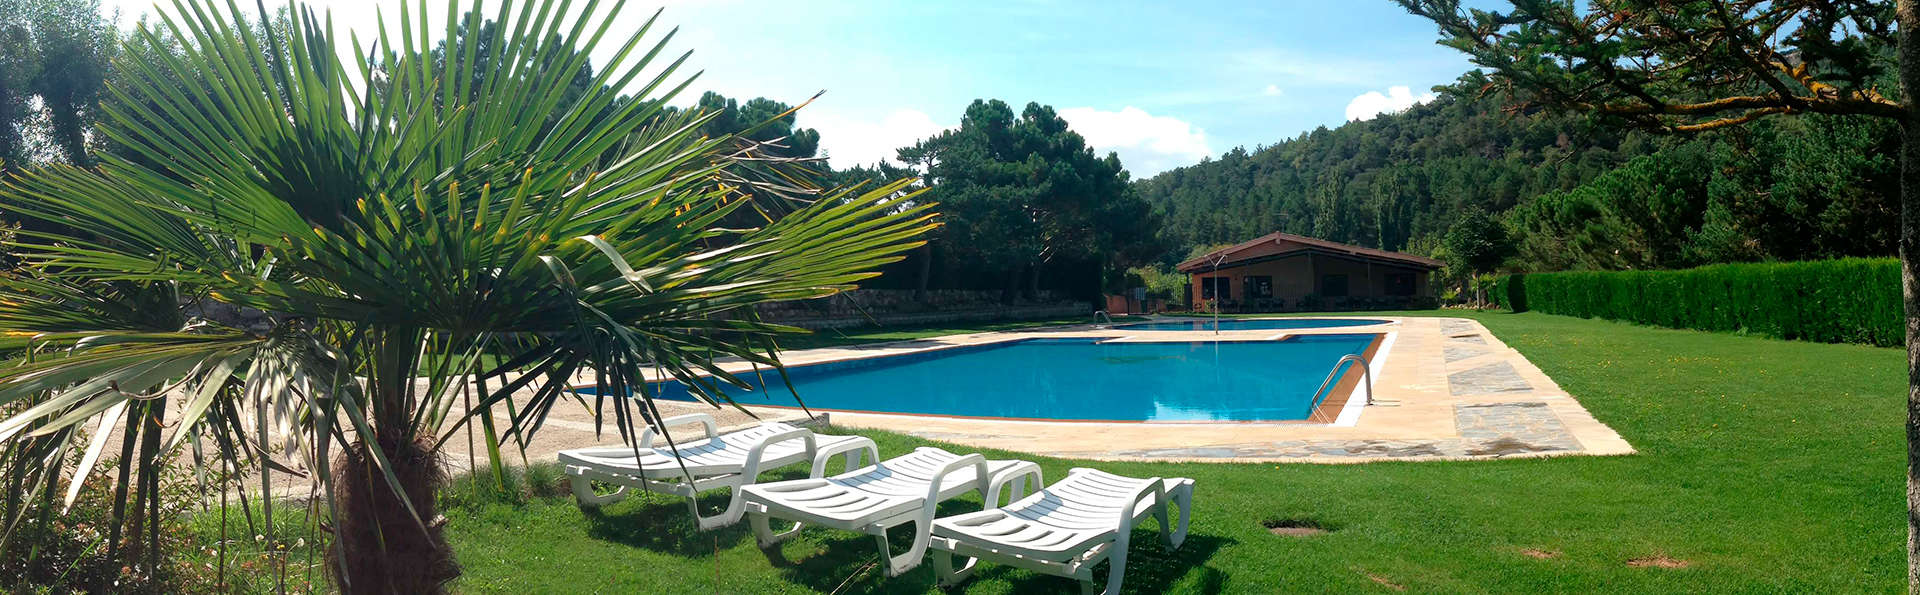 Prades Park Camping & Bungalow - edit_pool4.jpg